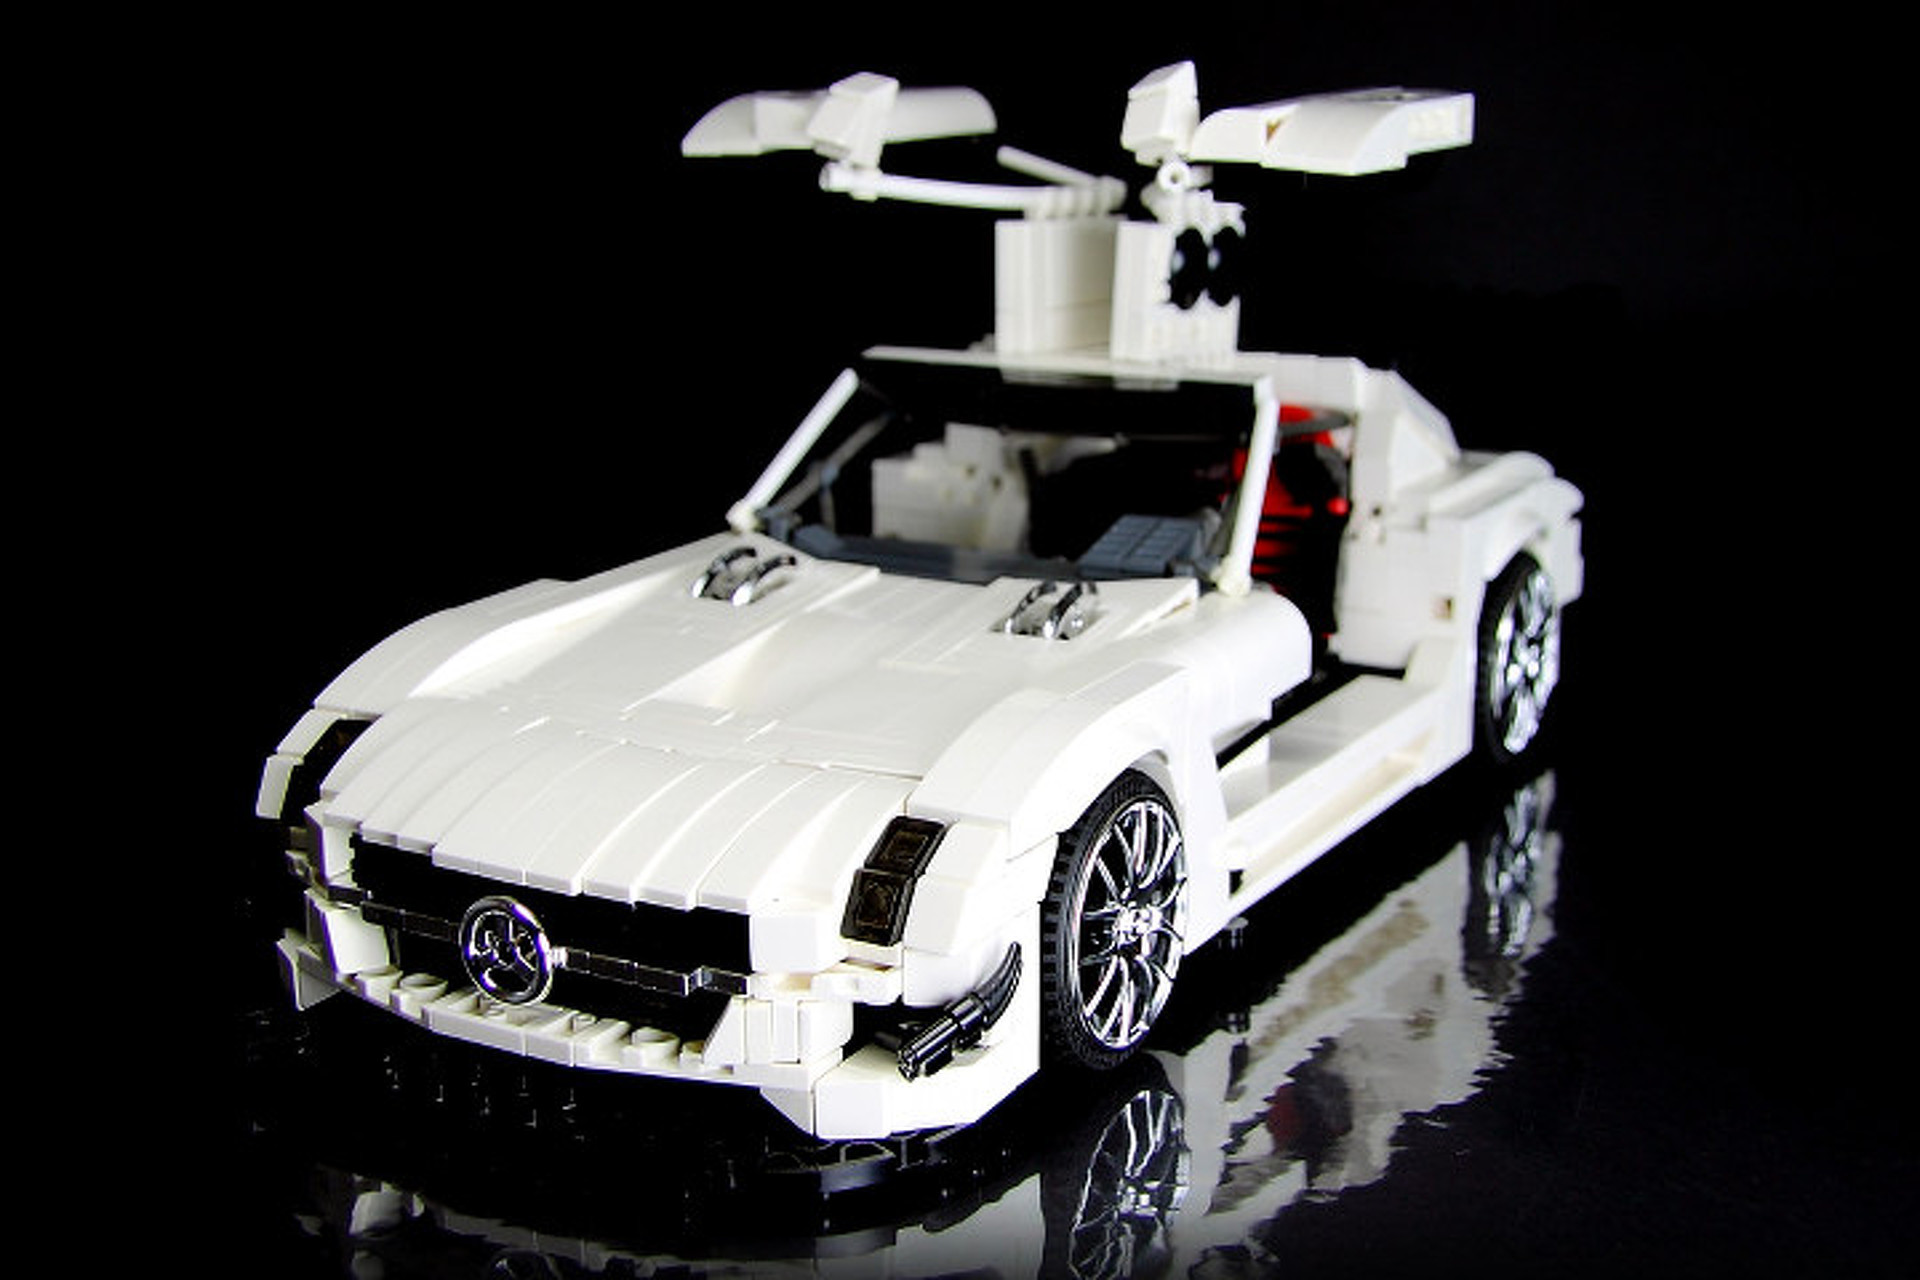 Lego SLS AMG GT3 is an Impressive Home-Built Creation